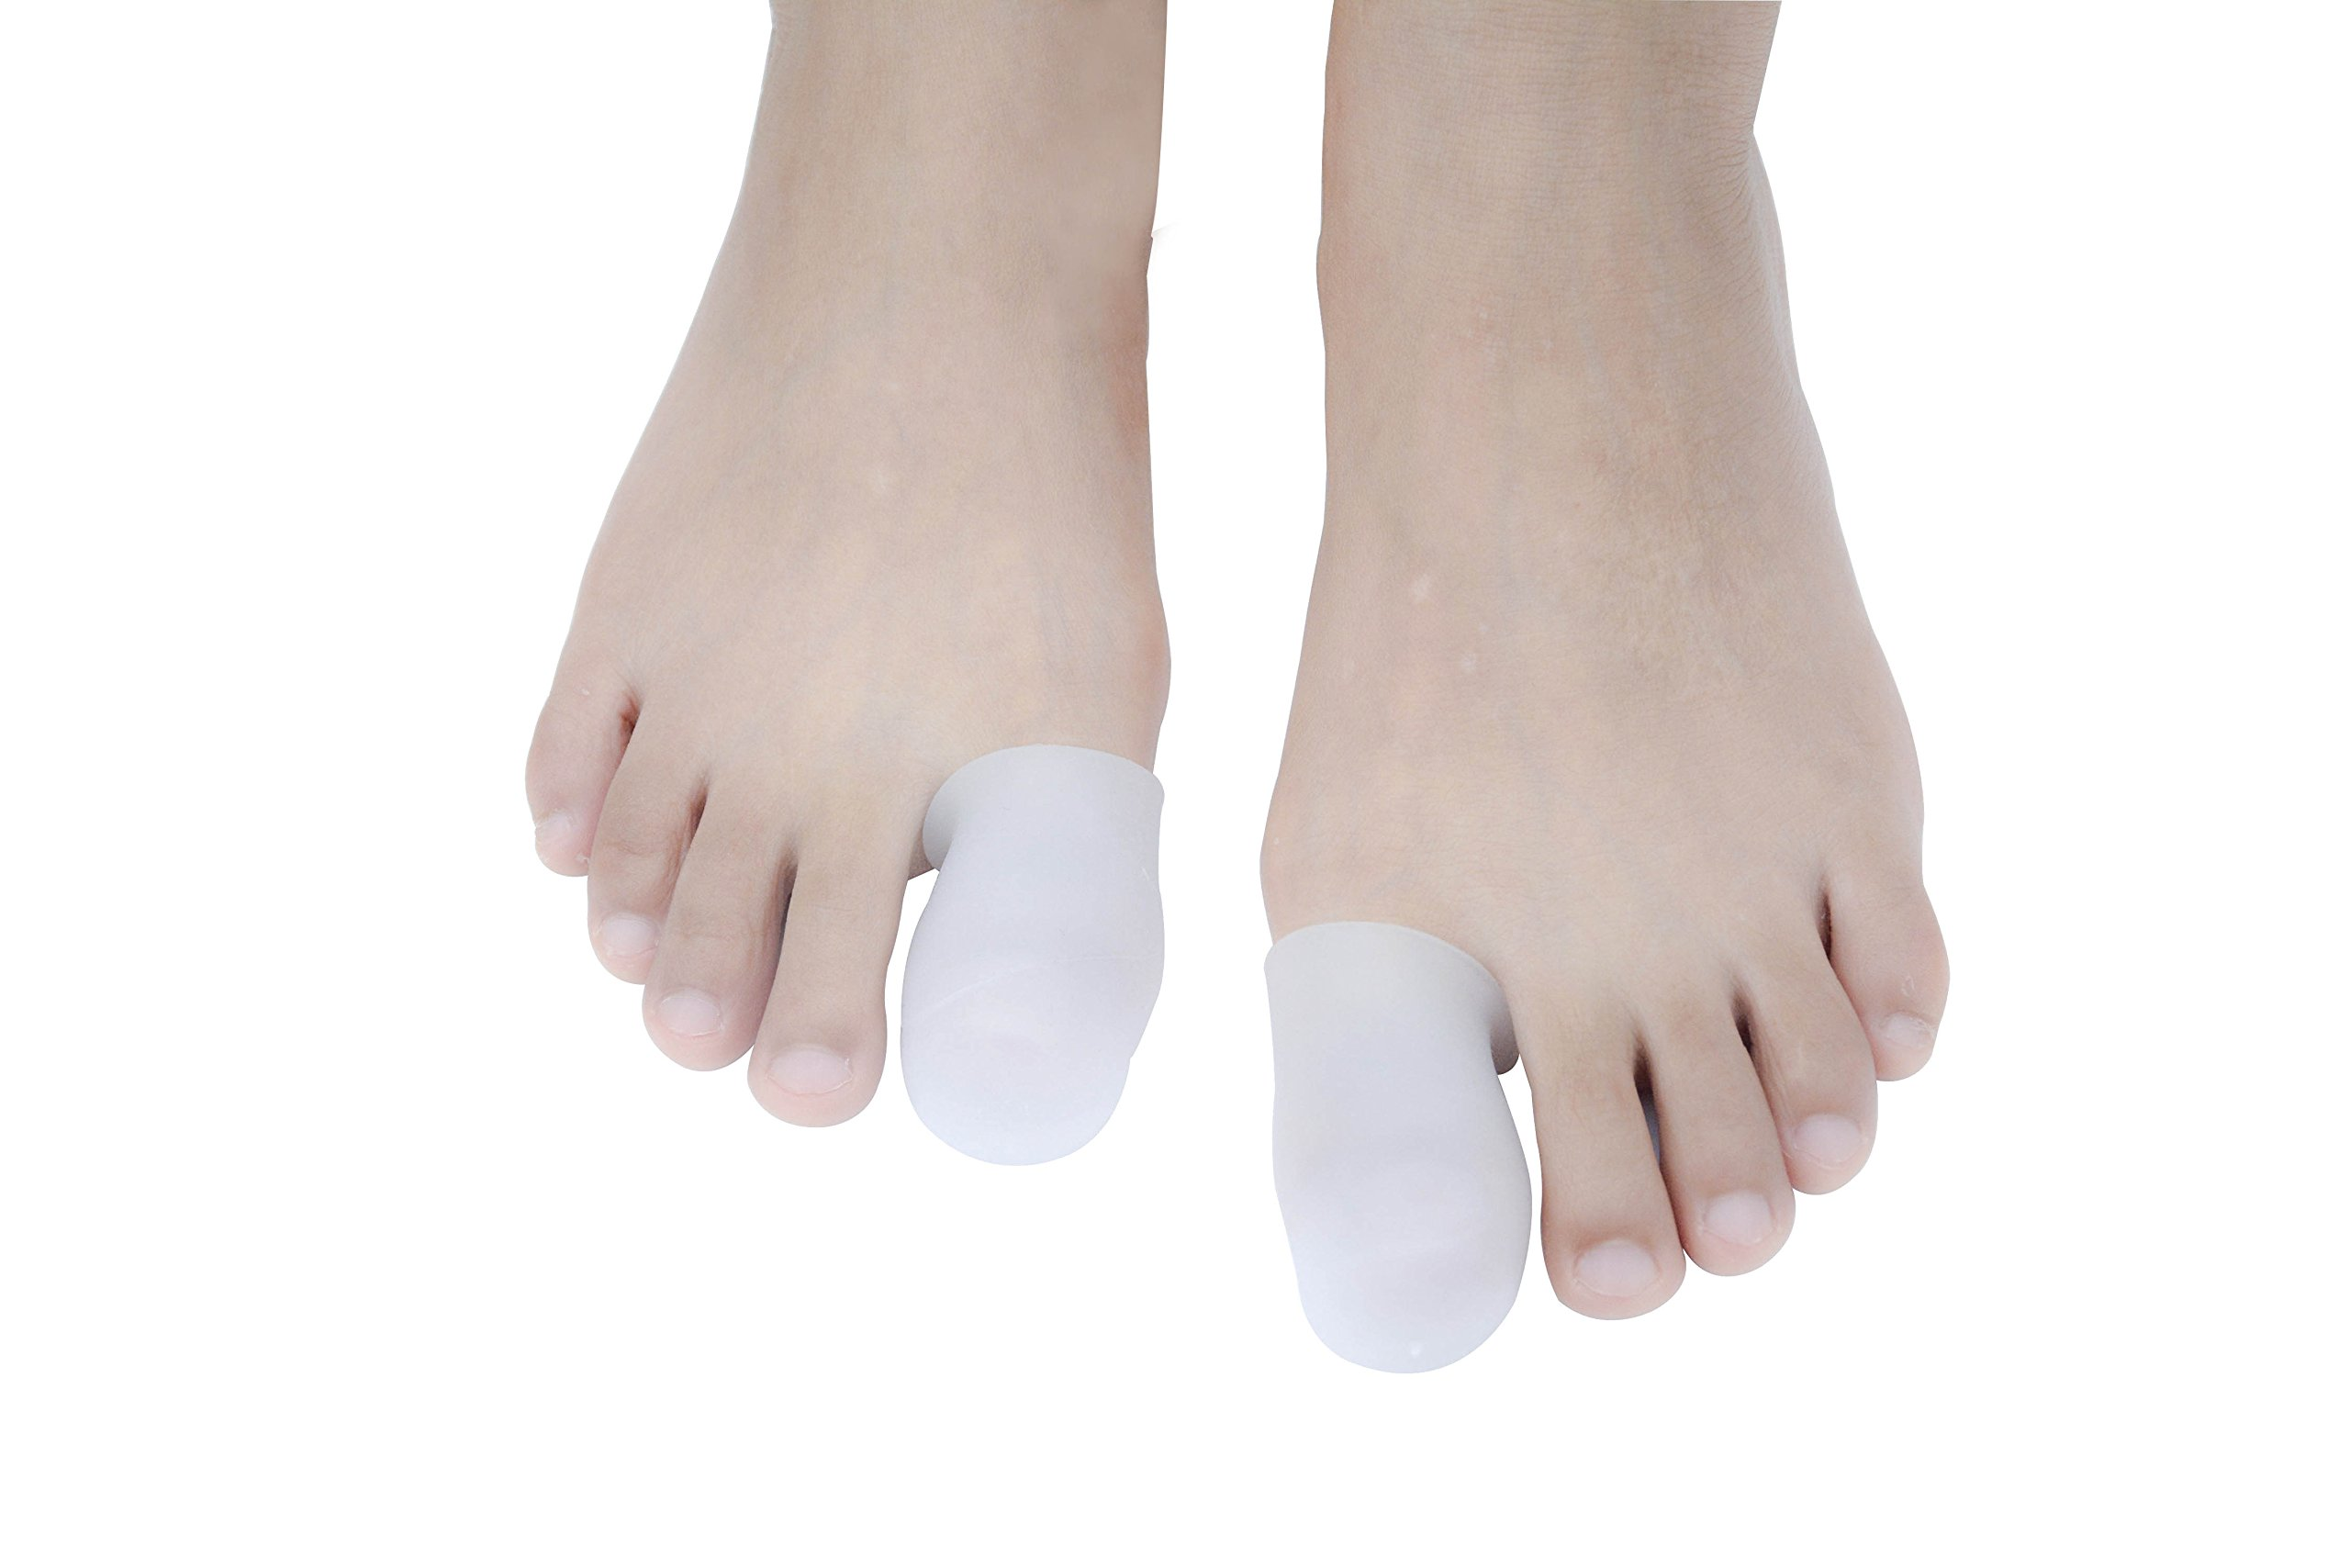 JK.Toes 10 Pack Big Toe Caps Protectors, Gel Toe Covers - Cushion for Corns, Calluses, Blister, Ingrown Toenail and Reduce Friction